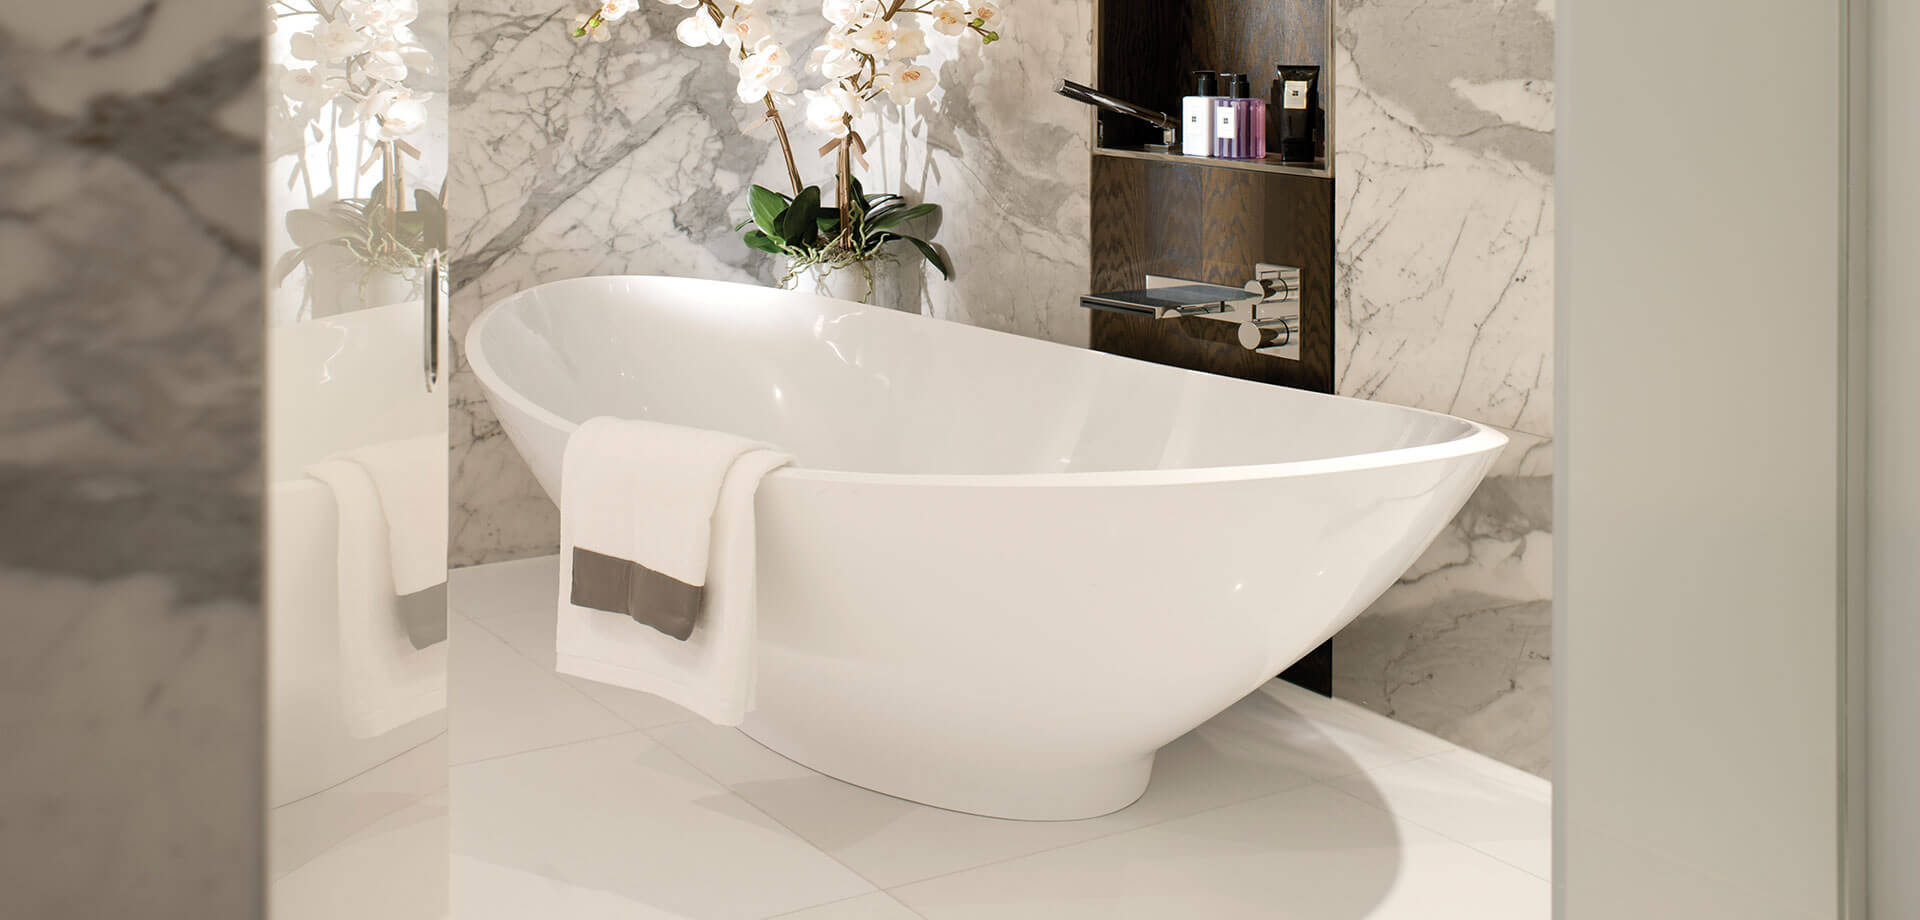 What You Need To Know About Stone Baths